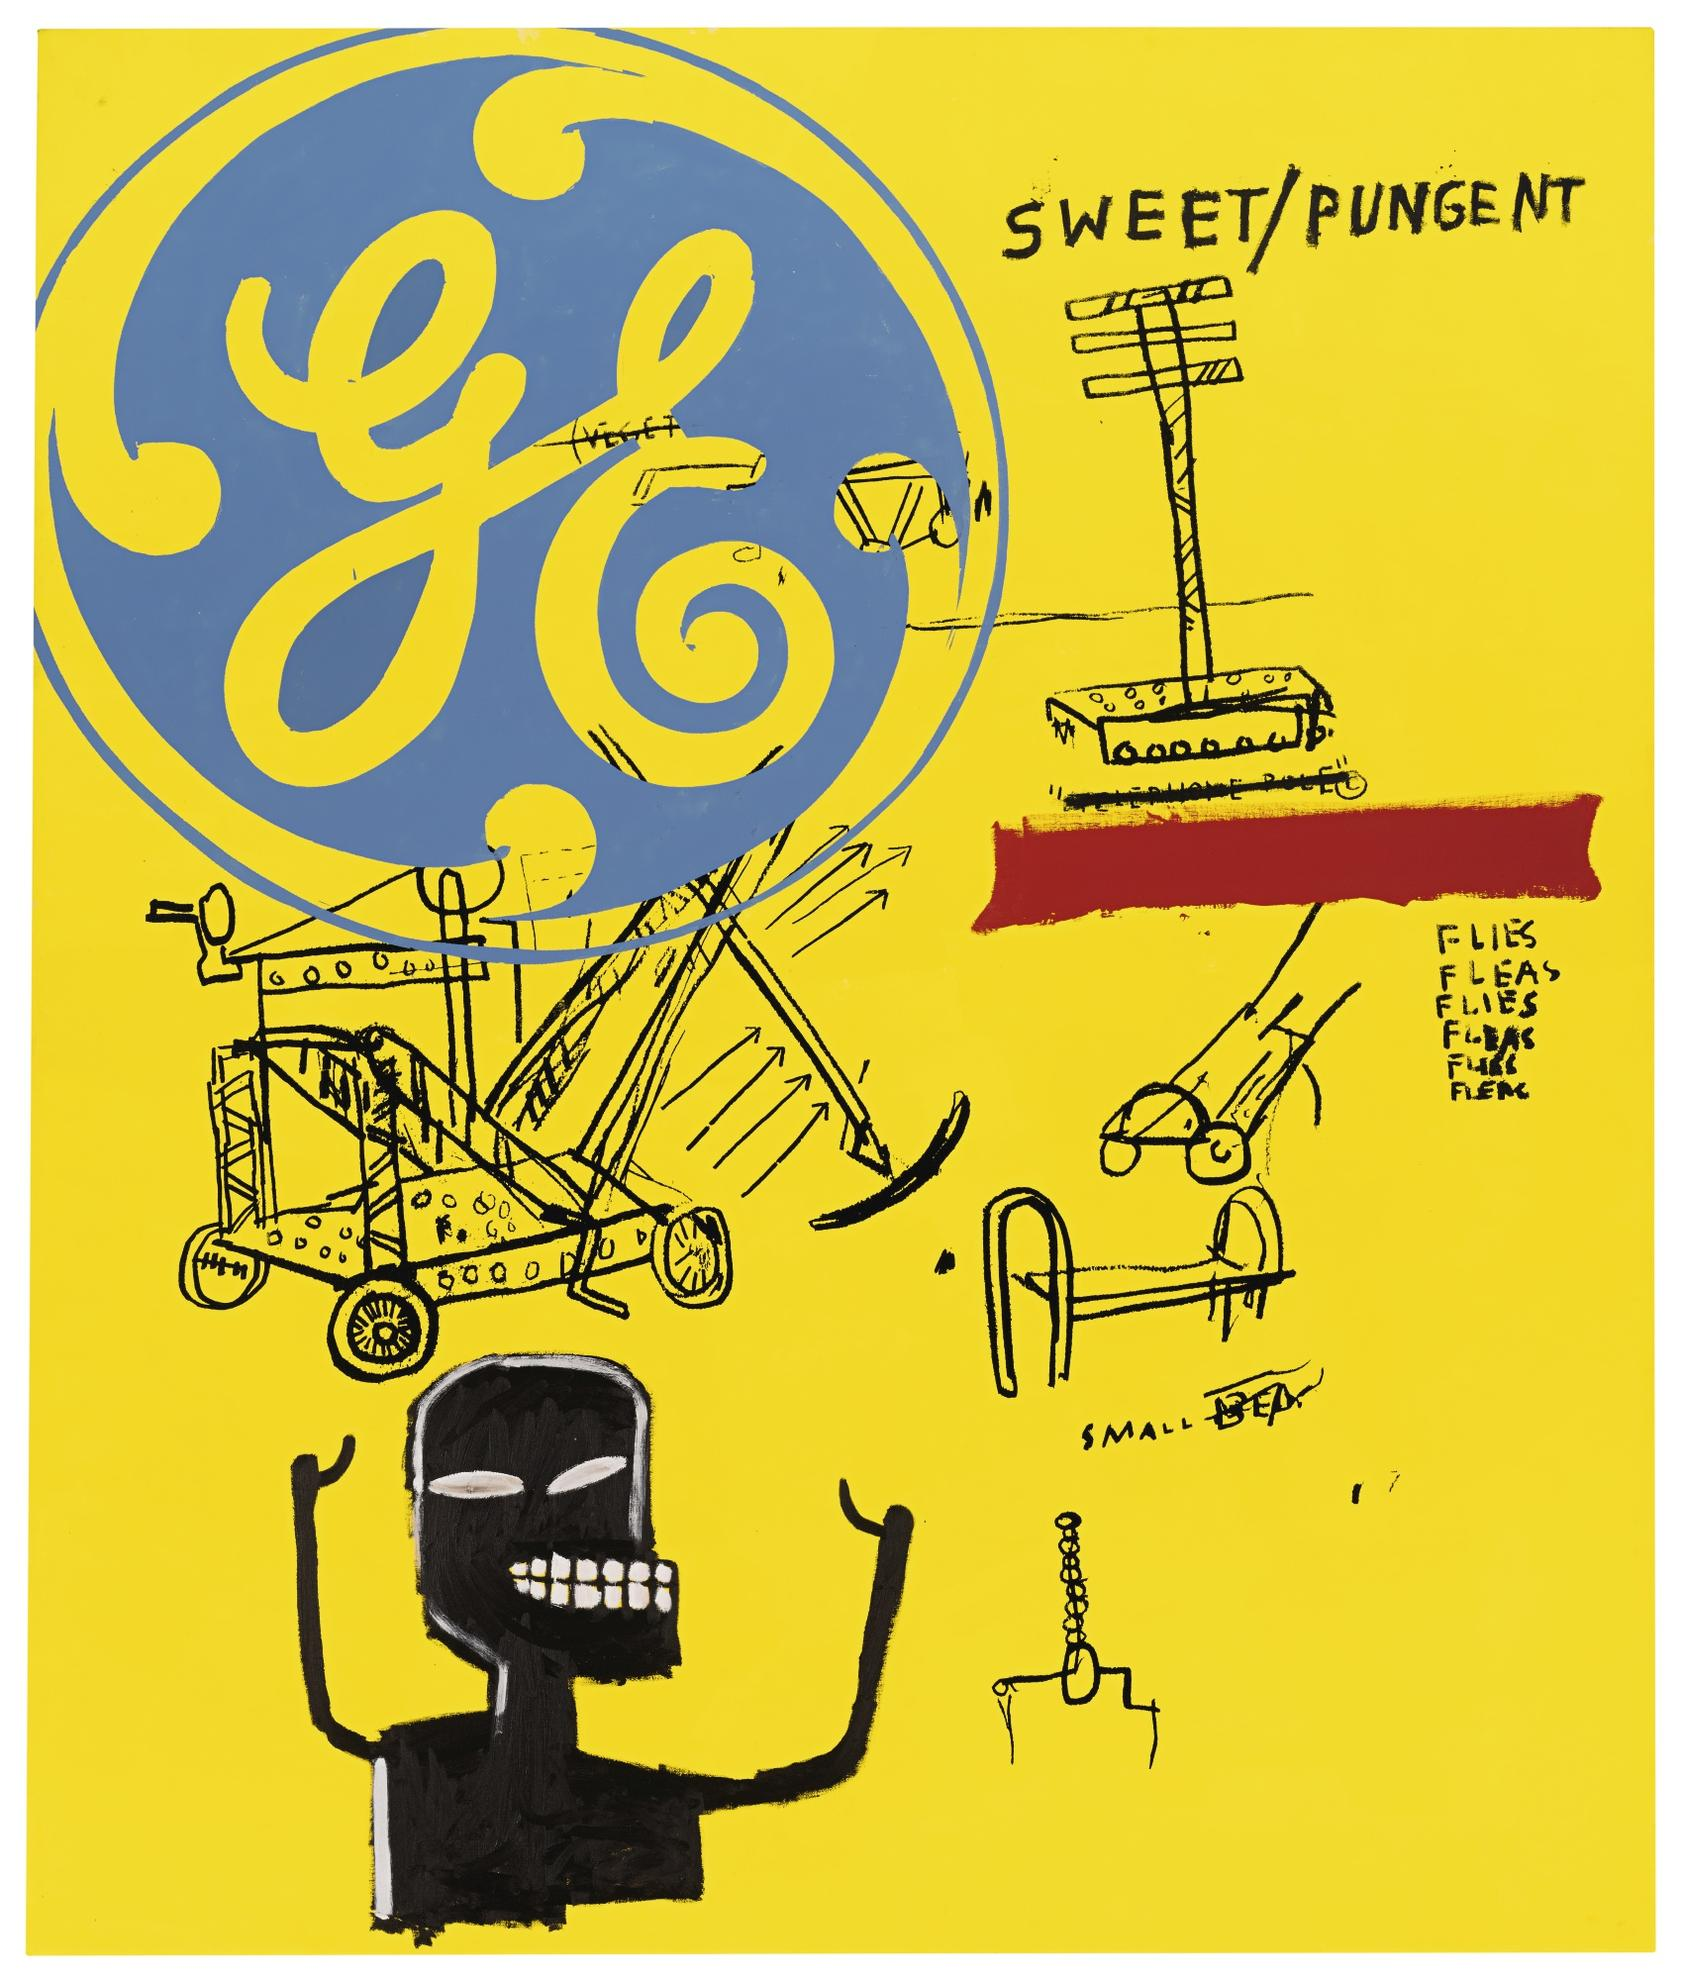 Andy Warhol And Jean-Michel Basquiat - Sweet Pungent-1985